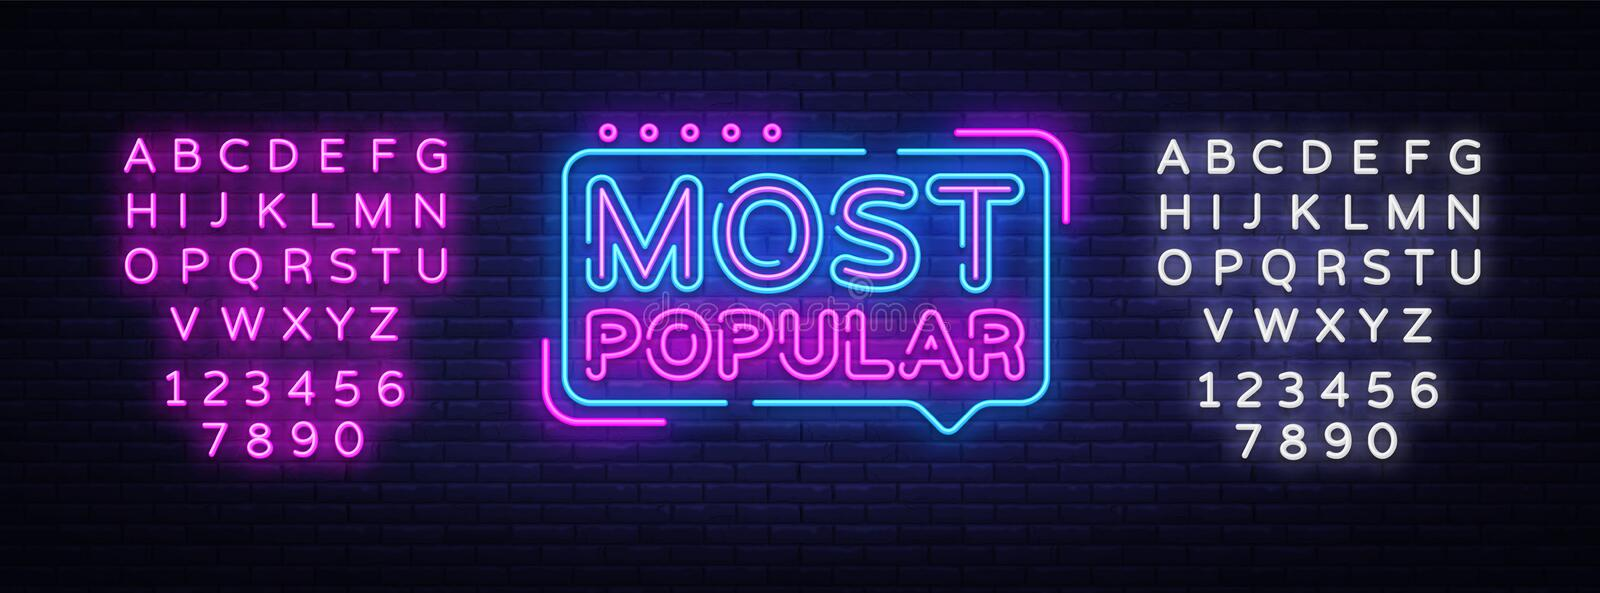 Most Popular neon sign vector. Most Popular Design template neon sign, light banner, neon signboard, nightly bright stock illustration